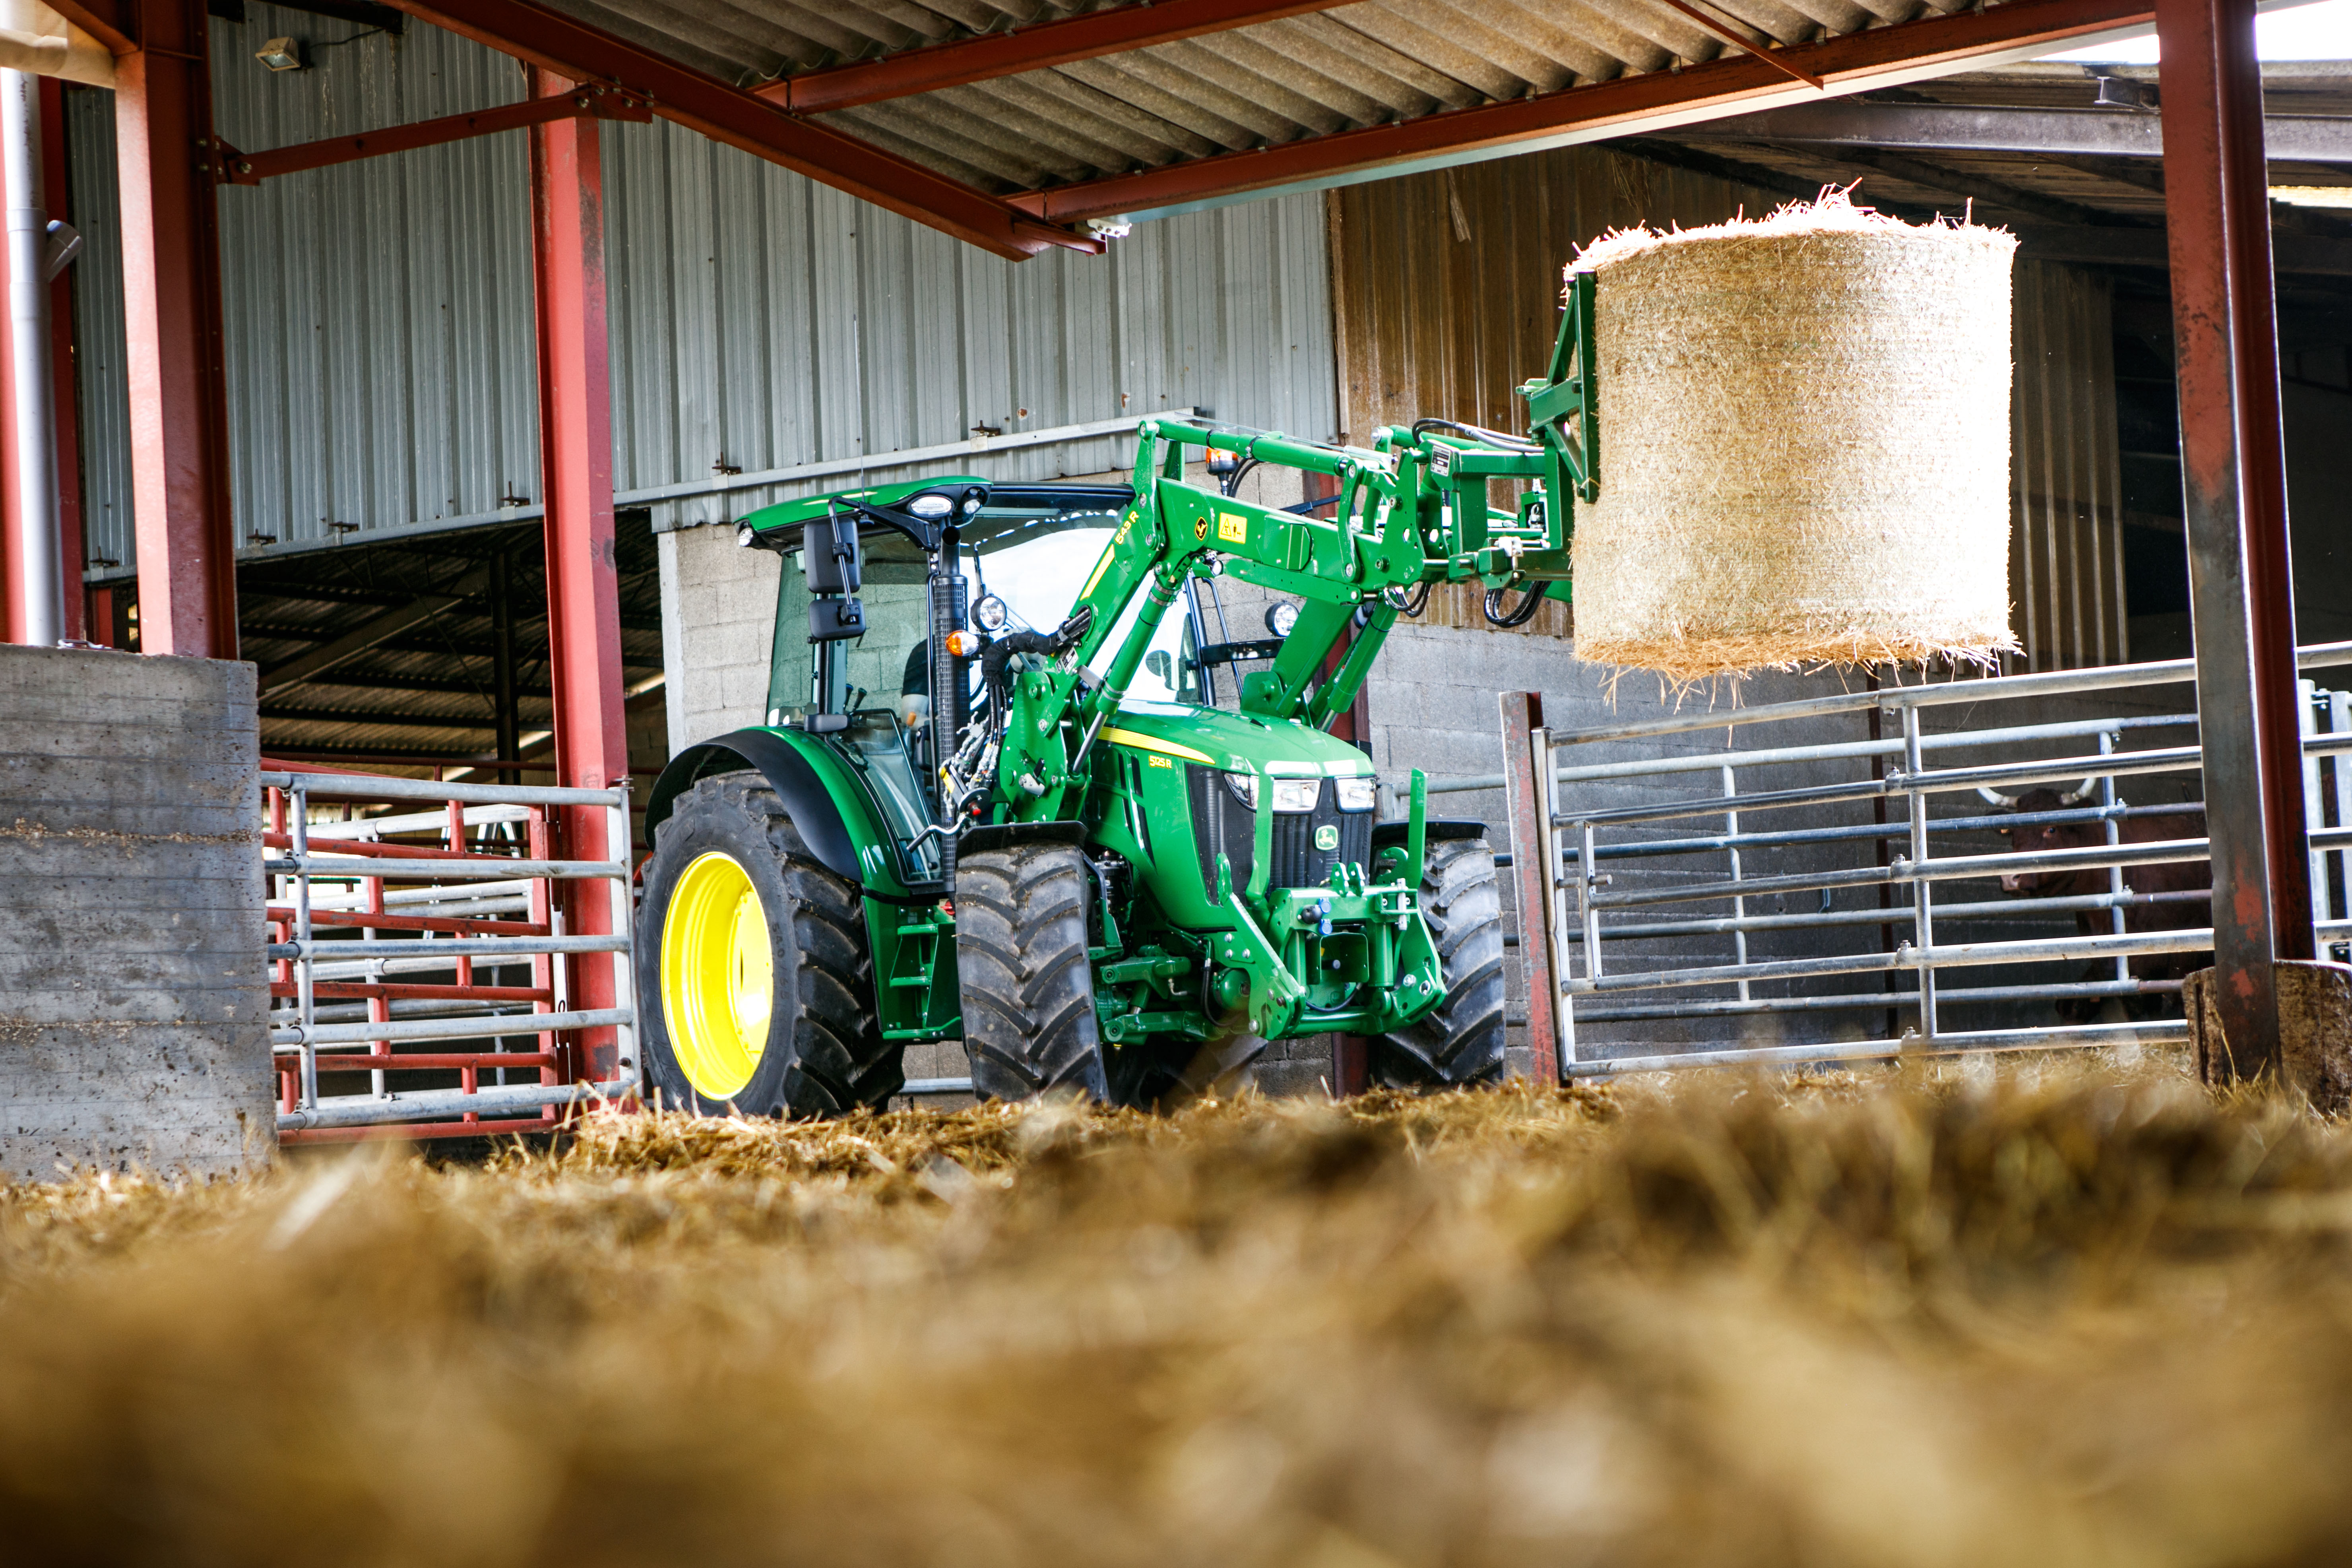 New 5R Series tractors & front loader